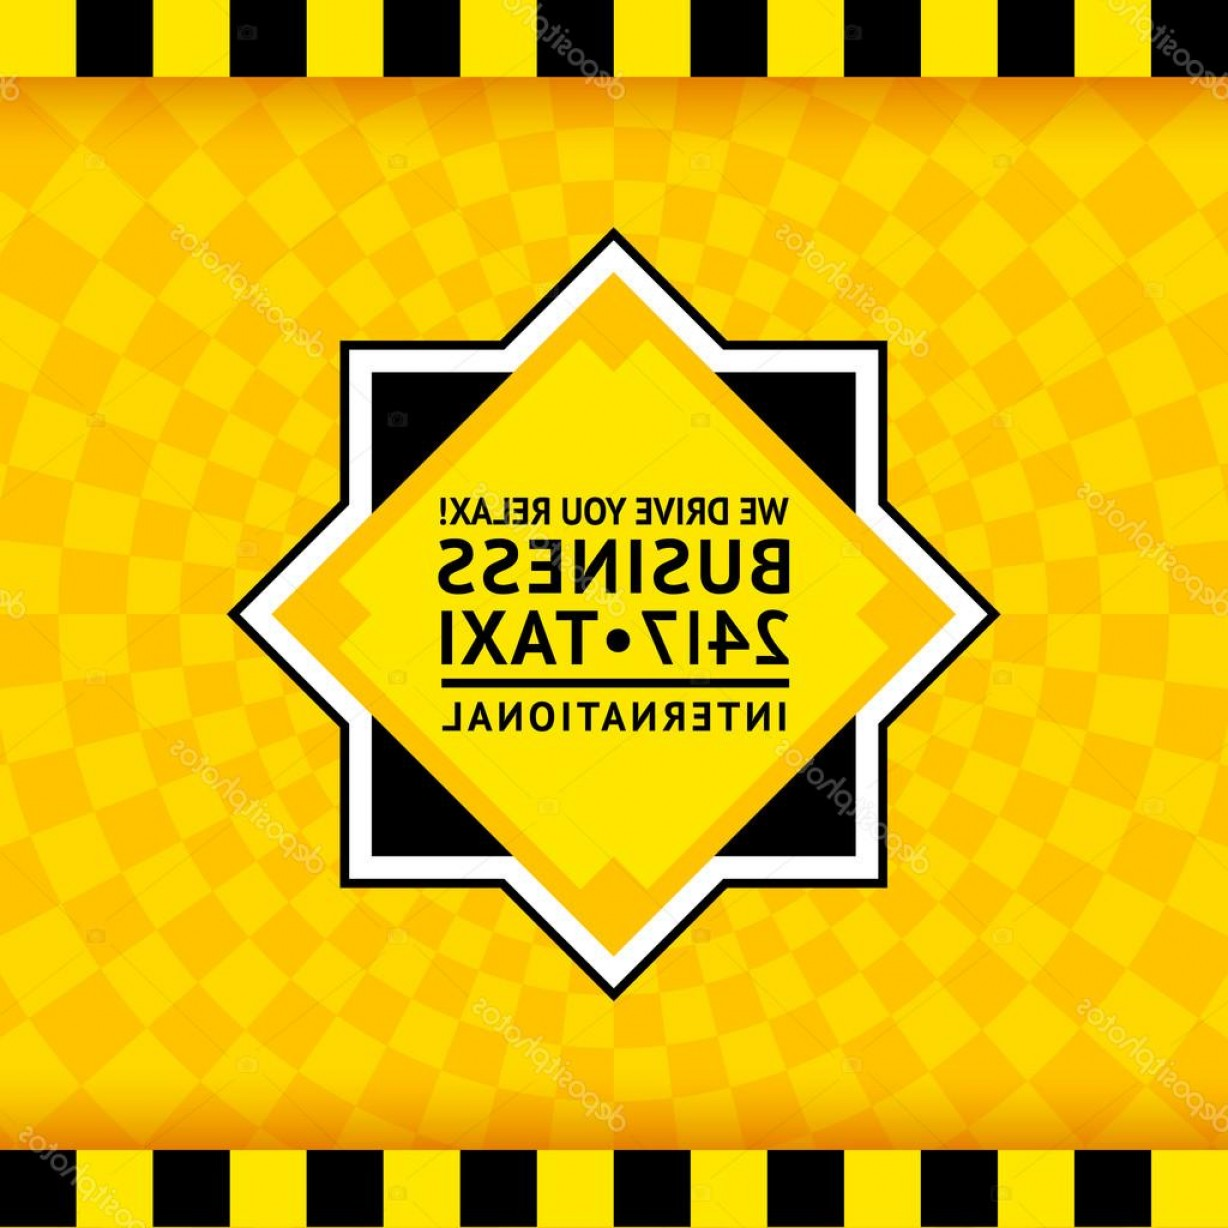 Taxi Checkers Vector: Stock Illustration Taxi Symbol With Checkered Background